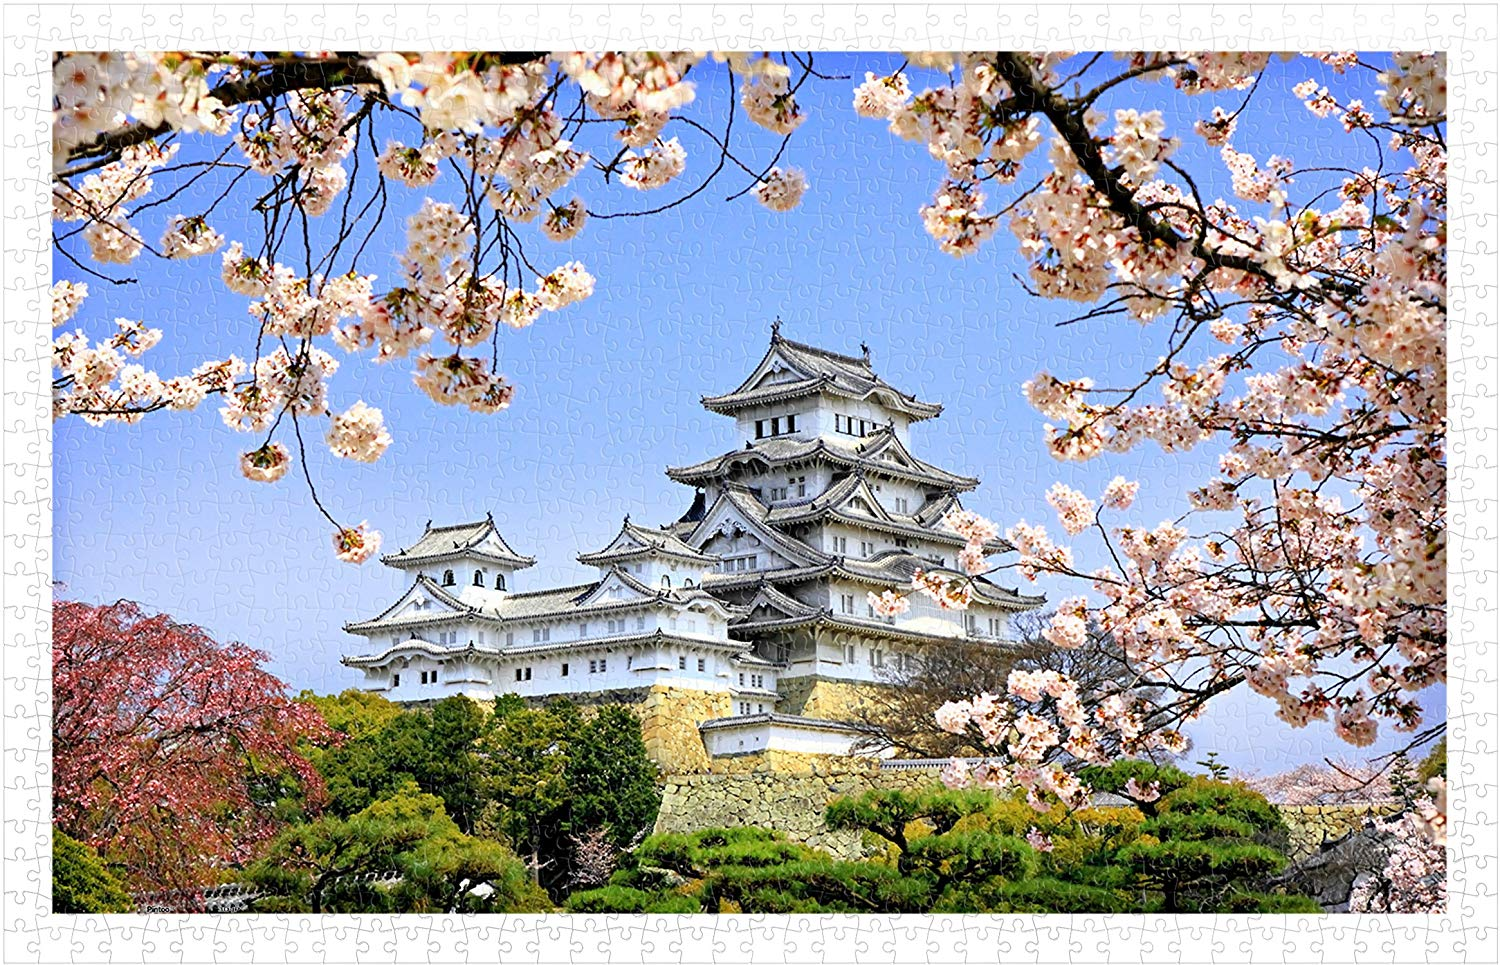 pintoo-puzzle-aus-kunststoff-himeji-jo-castle-in-spring-cherry-blossoms-1000-teile-puzzle-pintoo-h